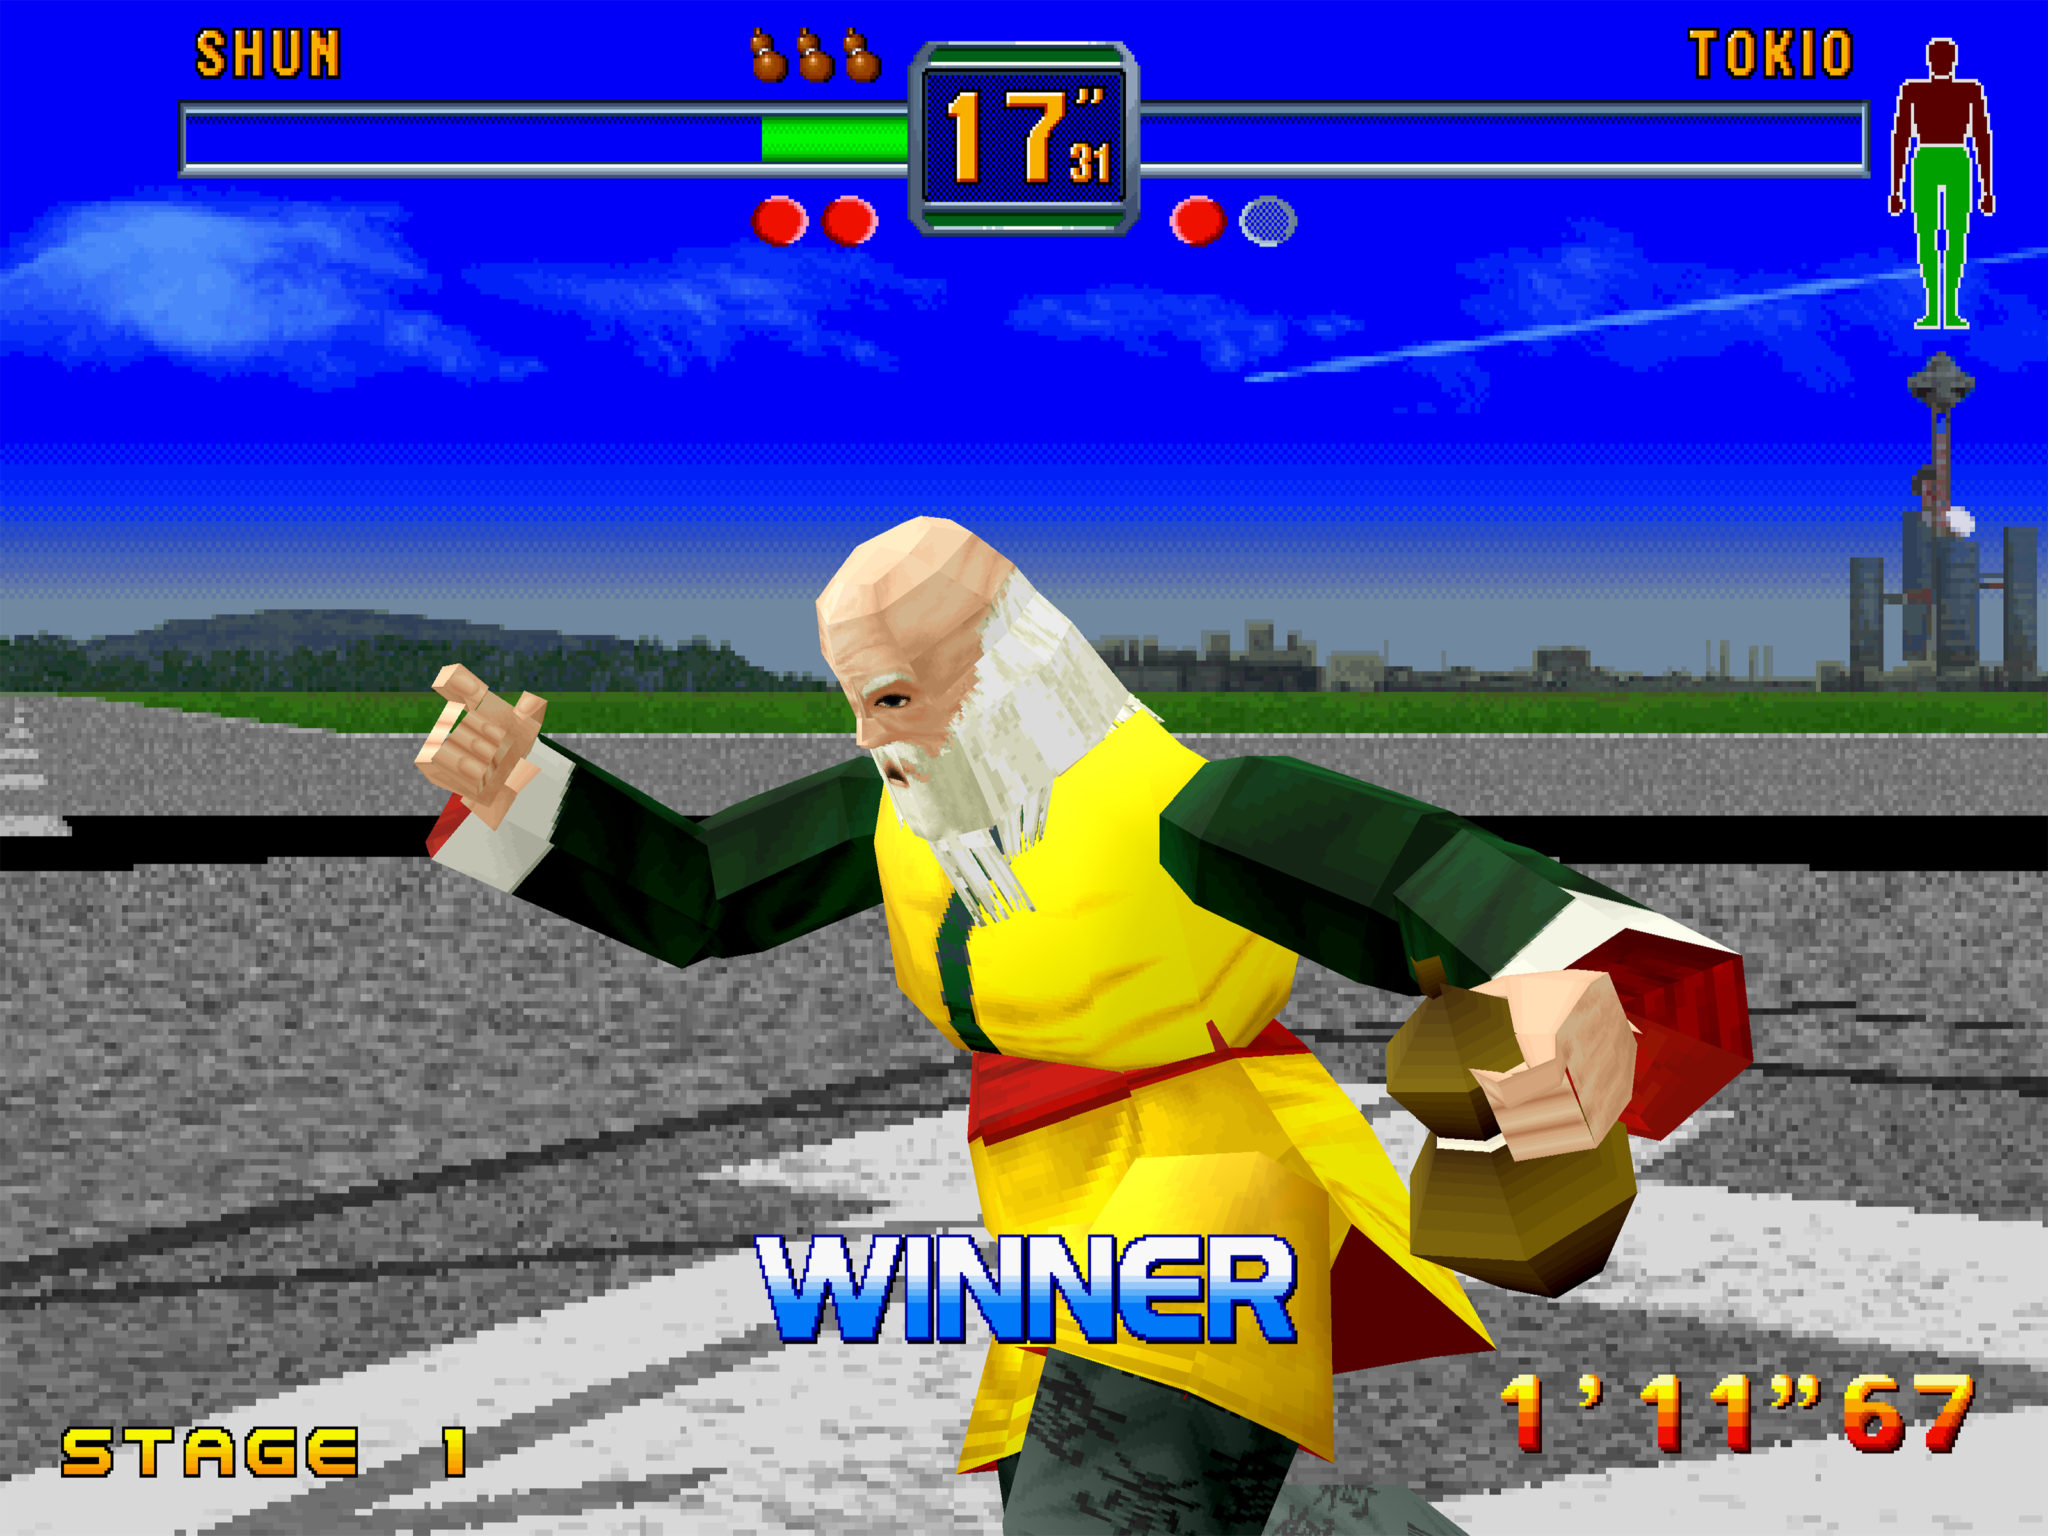 Check out these amazing screenshots of SEGA Saturn games in